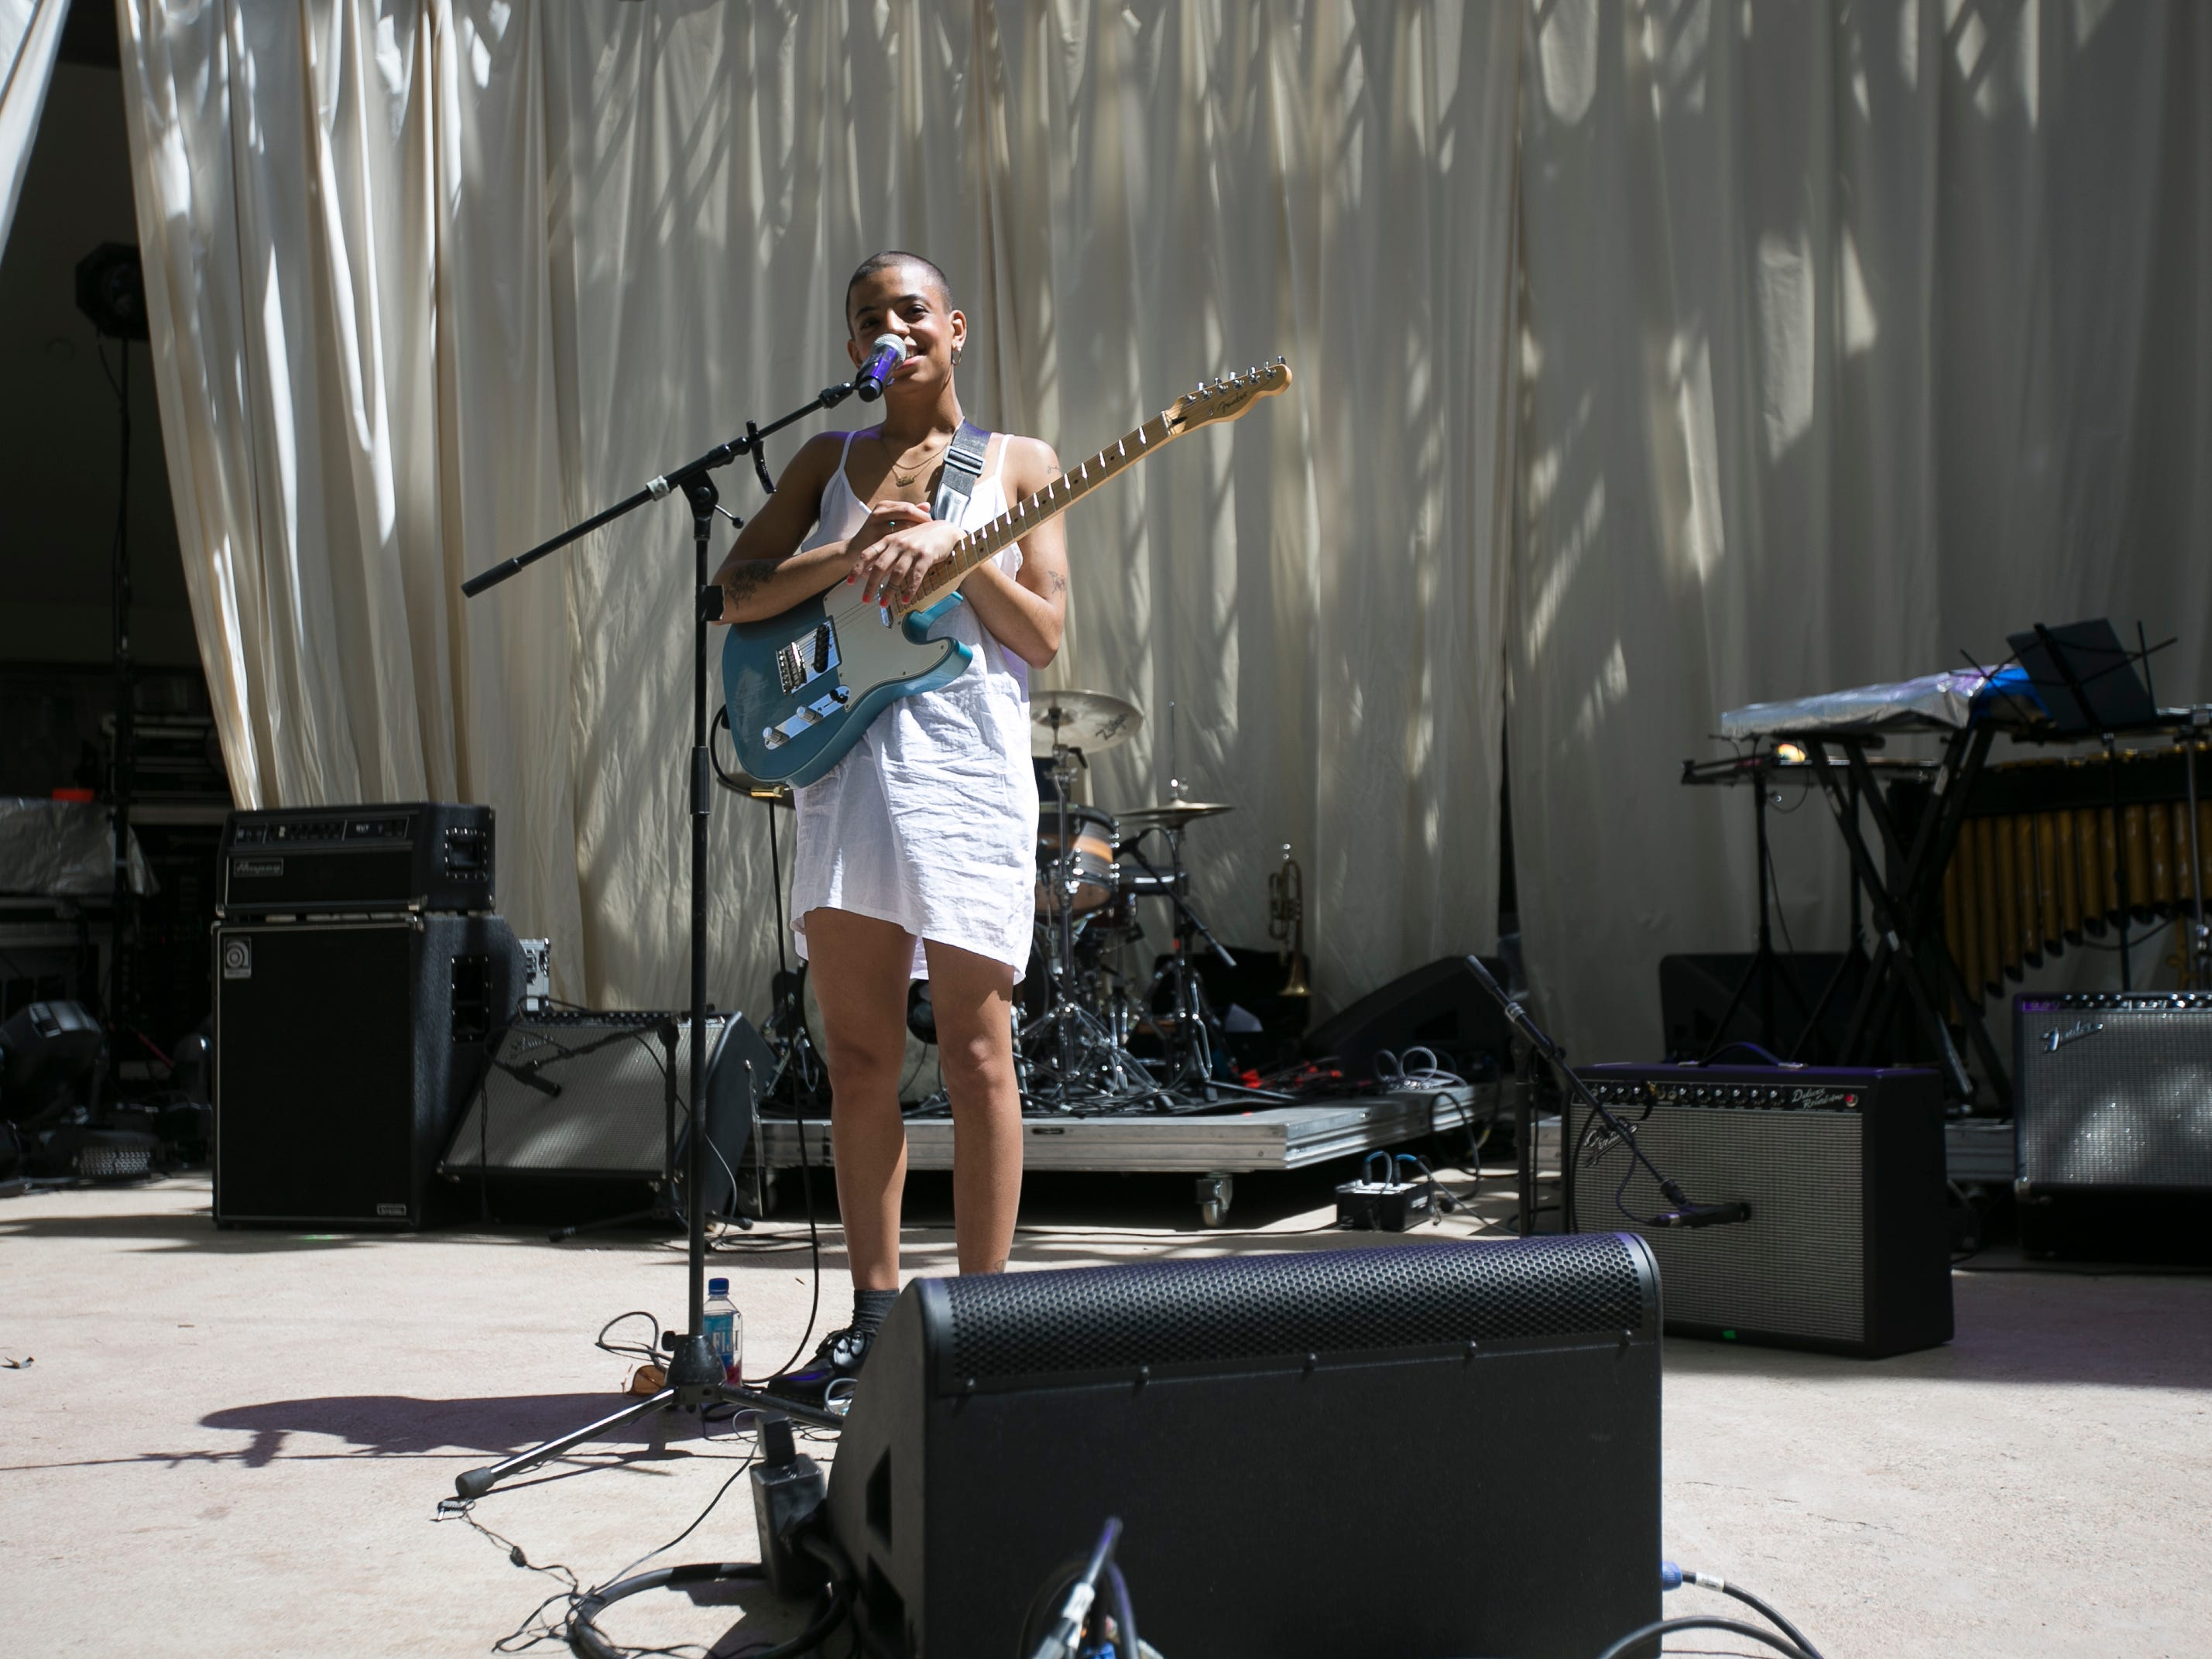 Tasha performs on the main stage at the 2019 FORM Arcosanti music festival near Camp Verde, Arizona, on May 10, 2019.